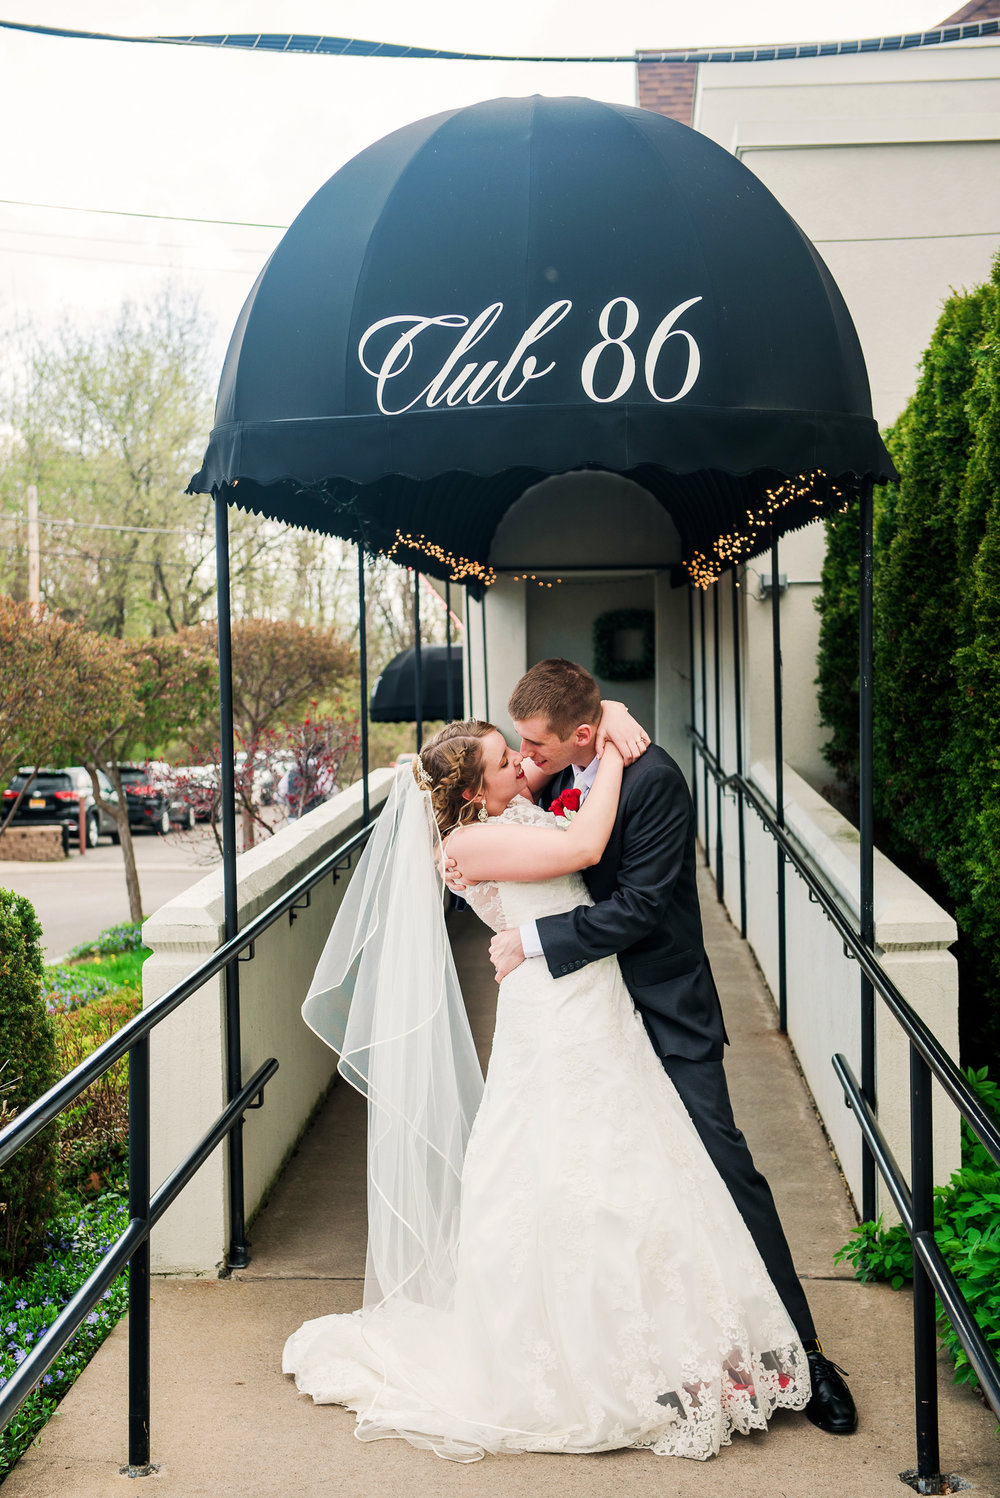 Club86_Finger_Lakes_Wedding_Rochester_NY_Photographer-7243.jpg